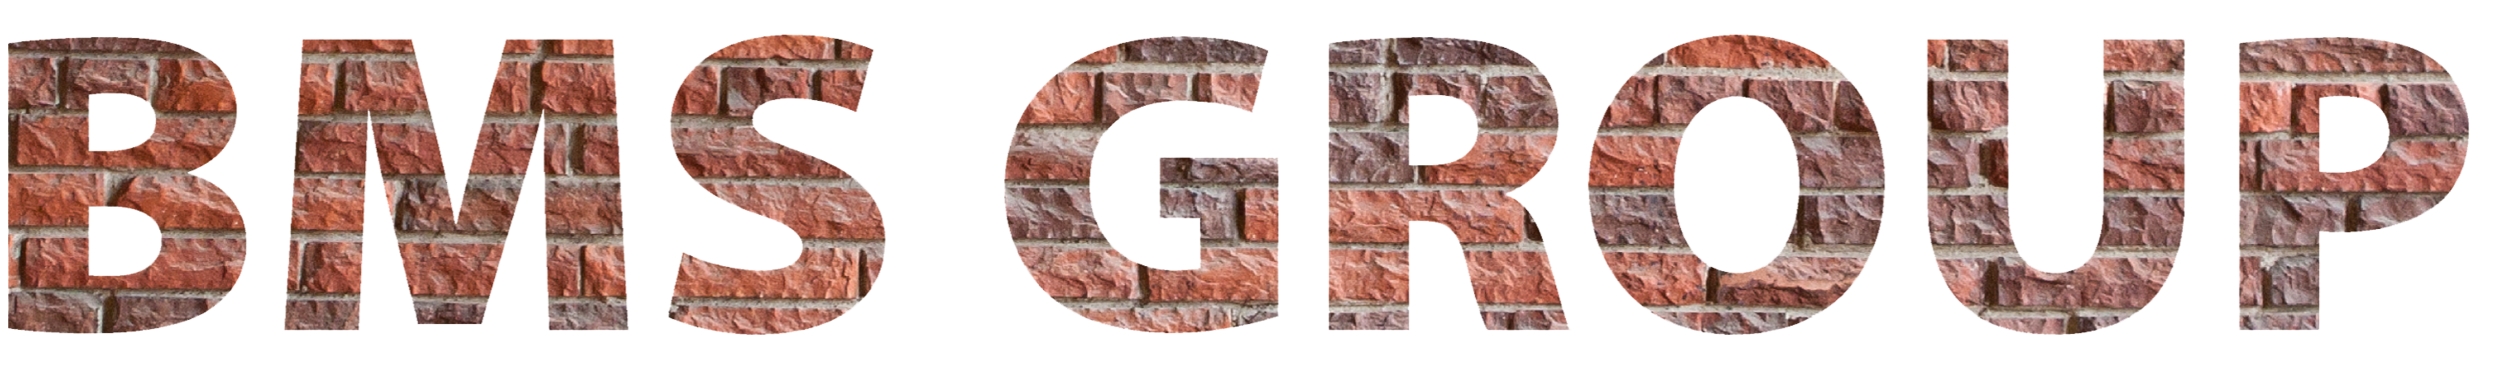 BMS-Group-PNG-FULL SIZE.png